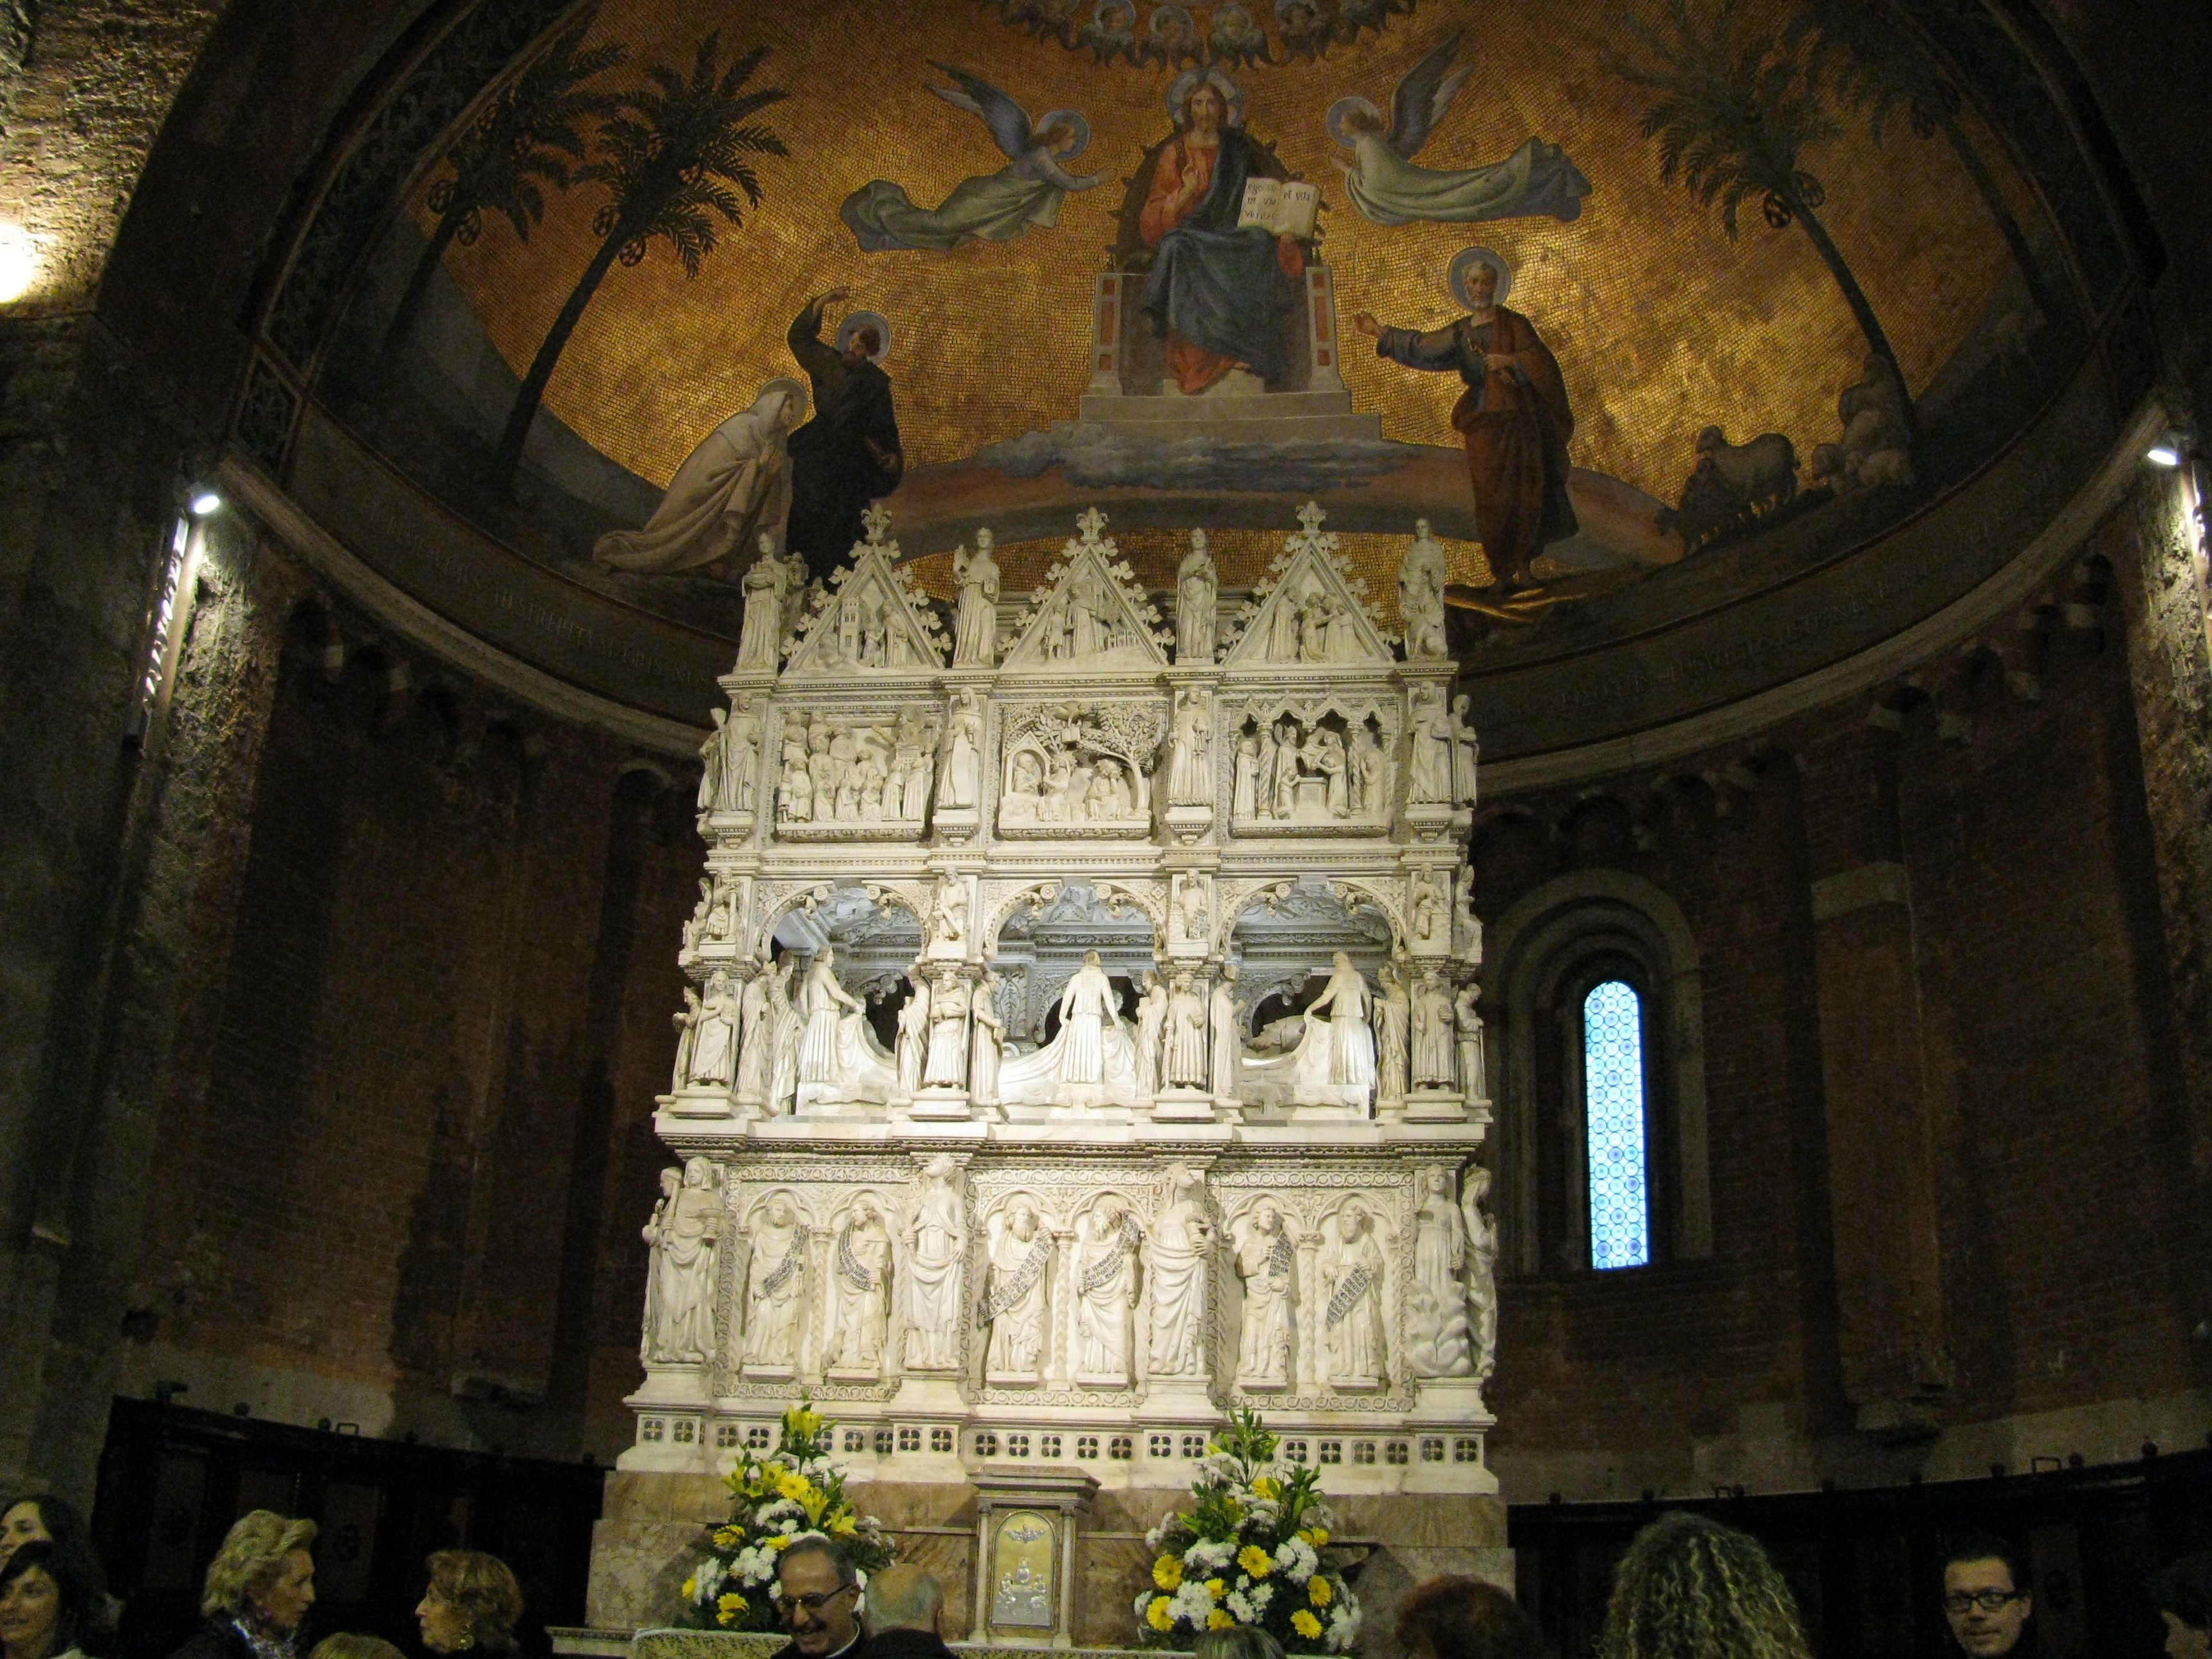 new concept 89a7c 8cde8 San Pietro in Ciel d'Oro, Pavia | art&artifact | Augustine ...